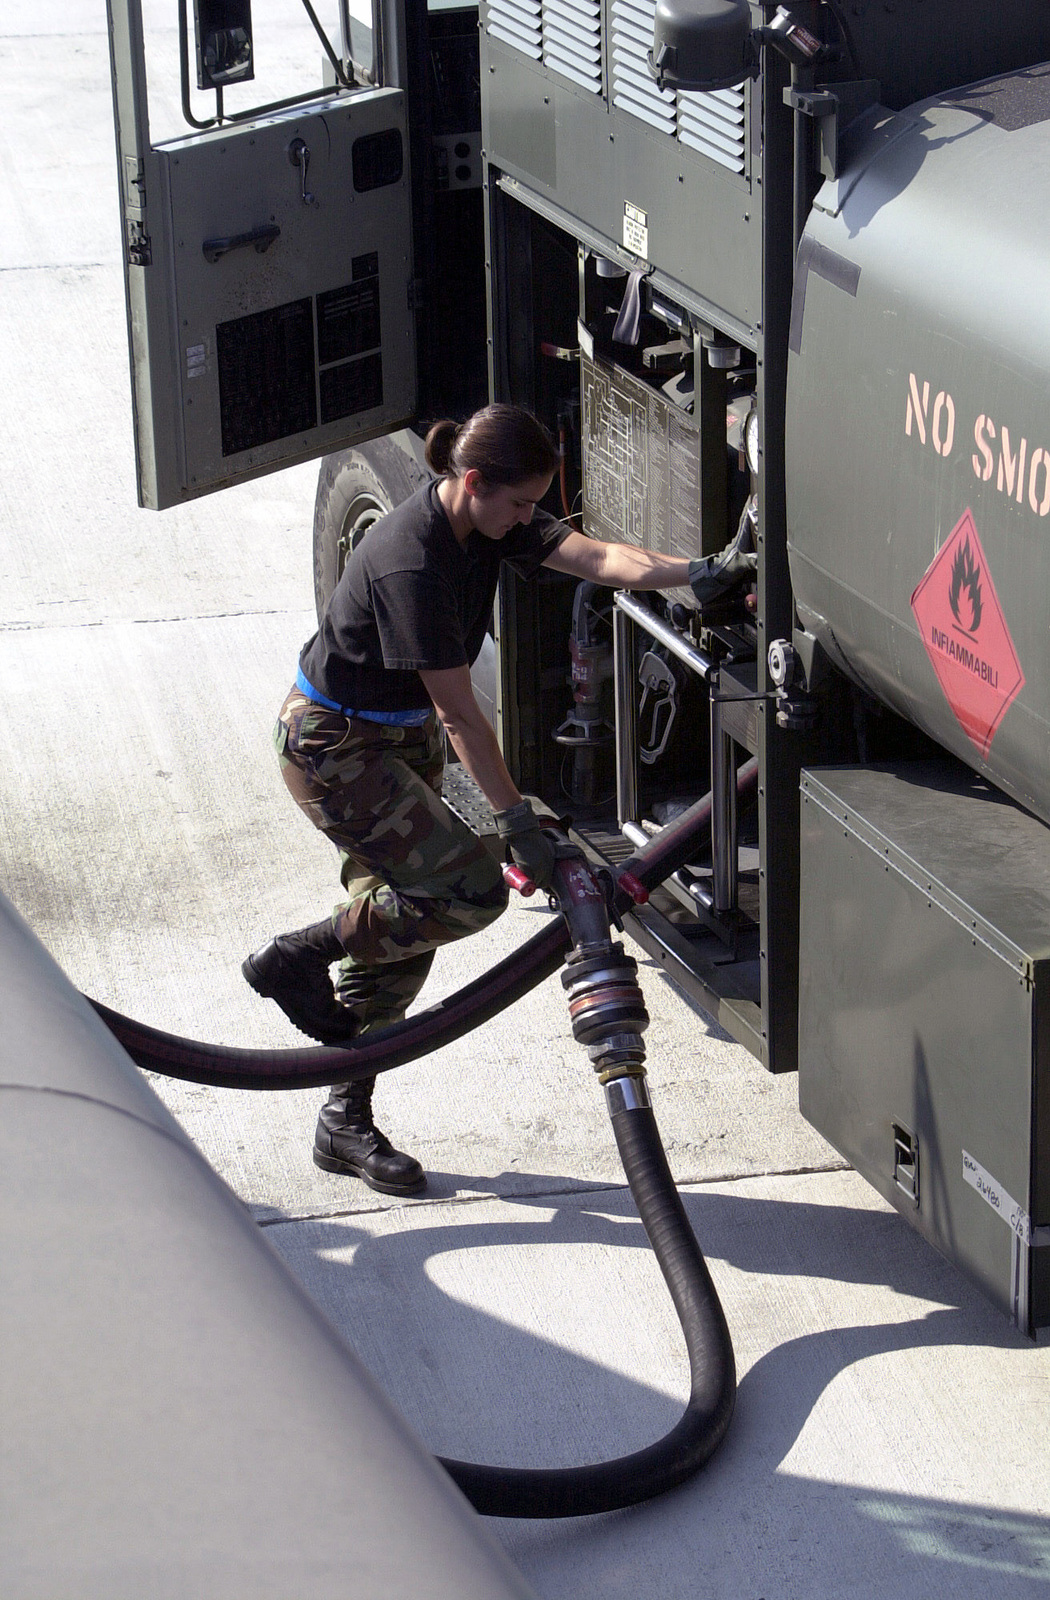 STAFF Sergeant Julia Nelson, US Air Force (USAF), fuels specialist, 375th Logistics Support Squadron, Scott Air Force Base, Illinois, reels in the refueling hose back into her R-11 fuel truck after filling up a C-17 Globemaster at Naval Air Station Sigonella, Italy, during Operation ENDURING FREEDOM. In response to the terrorist attacks on September 11, 2001 at the New York World Trade Center and the Pentagon, President George W. Bush initiated Operation ENDURING FREEDOM in support of the Global War on Terrorism (GWOT), fighting terrorism abroad